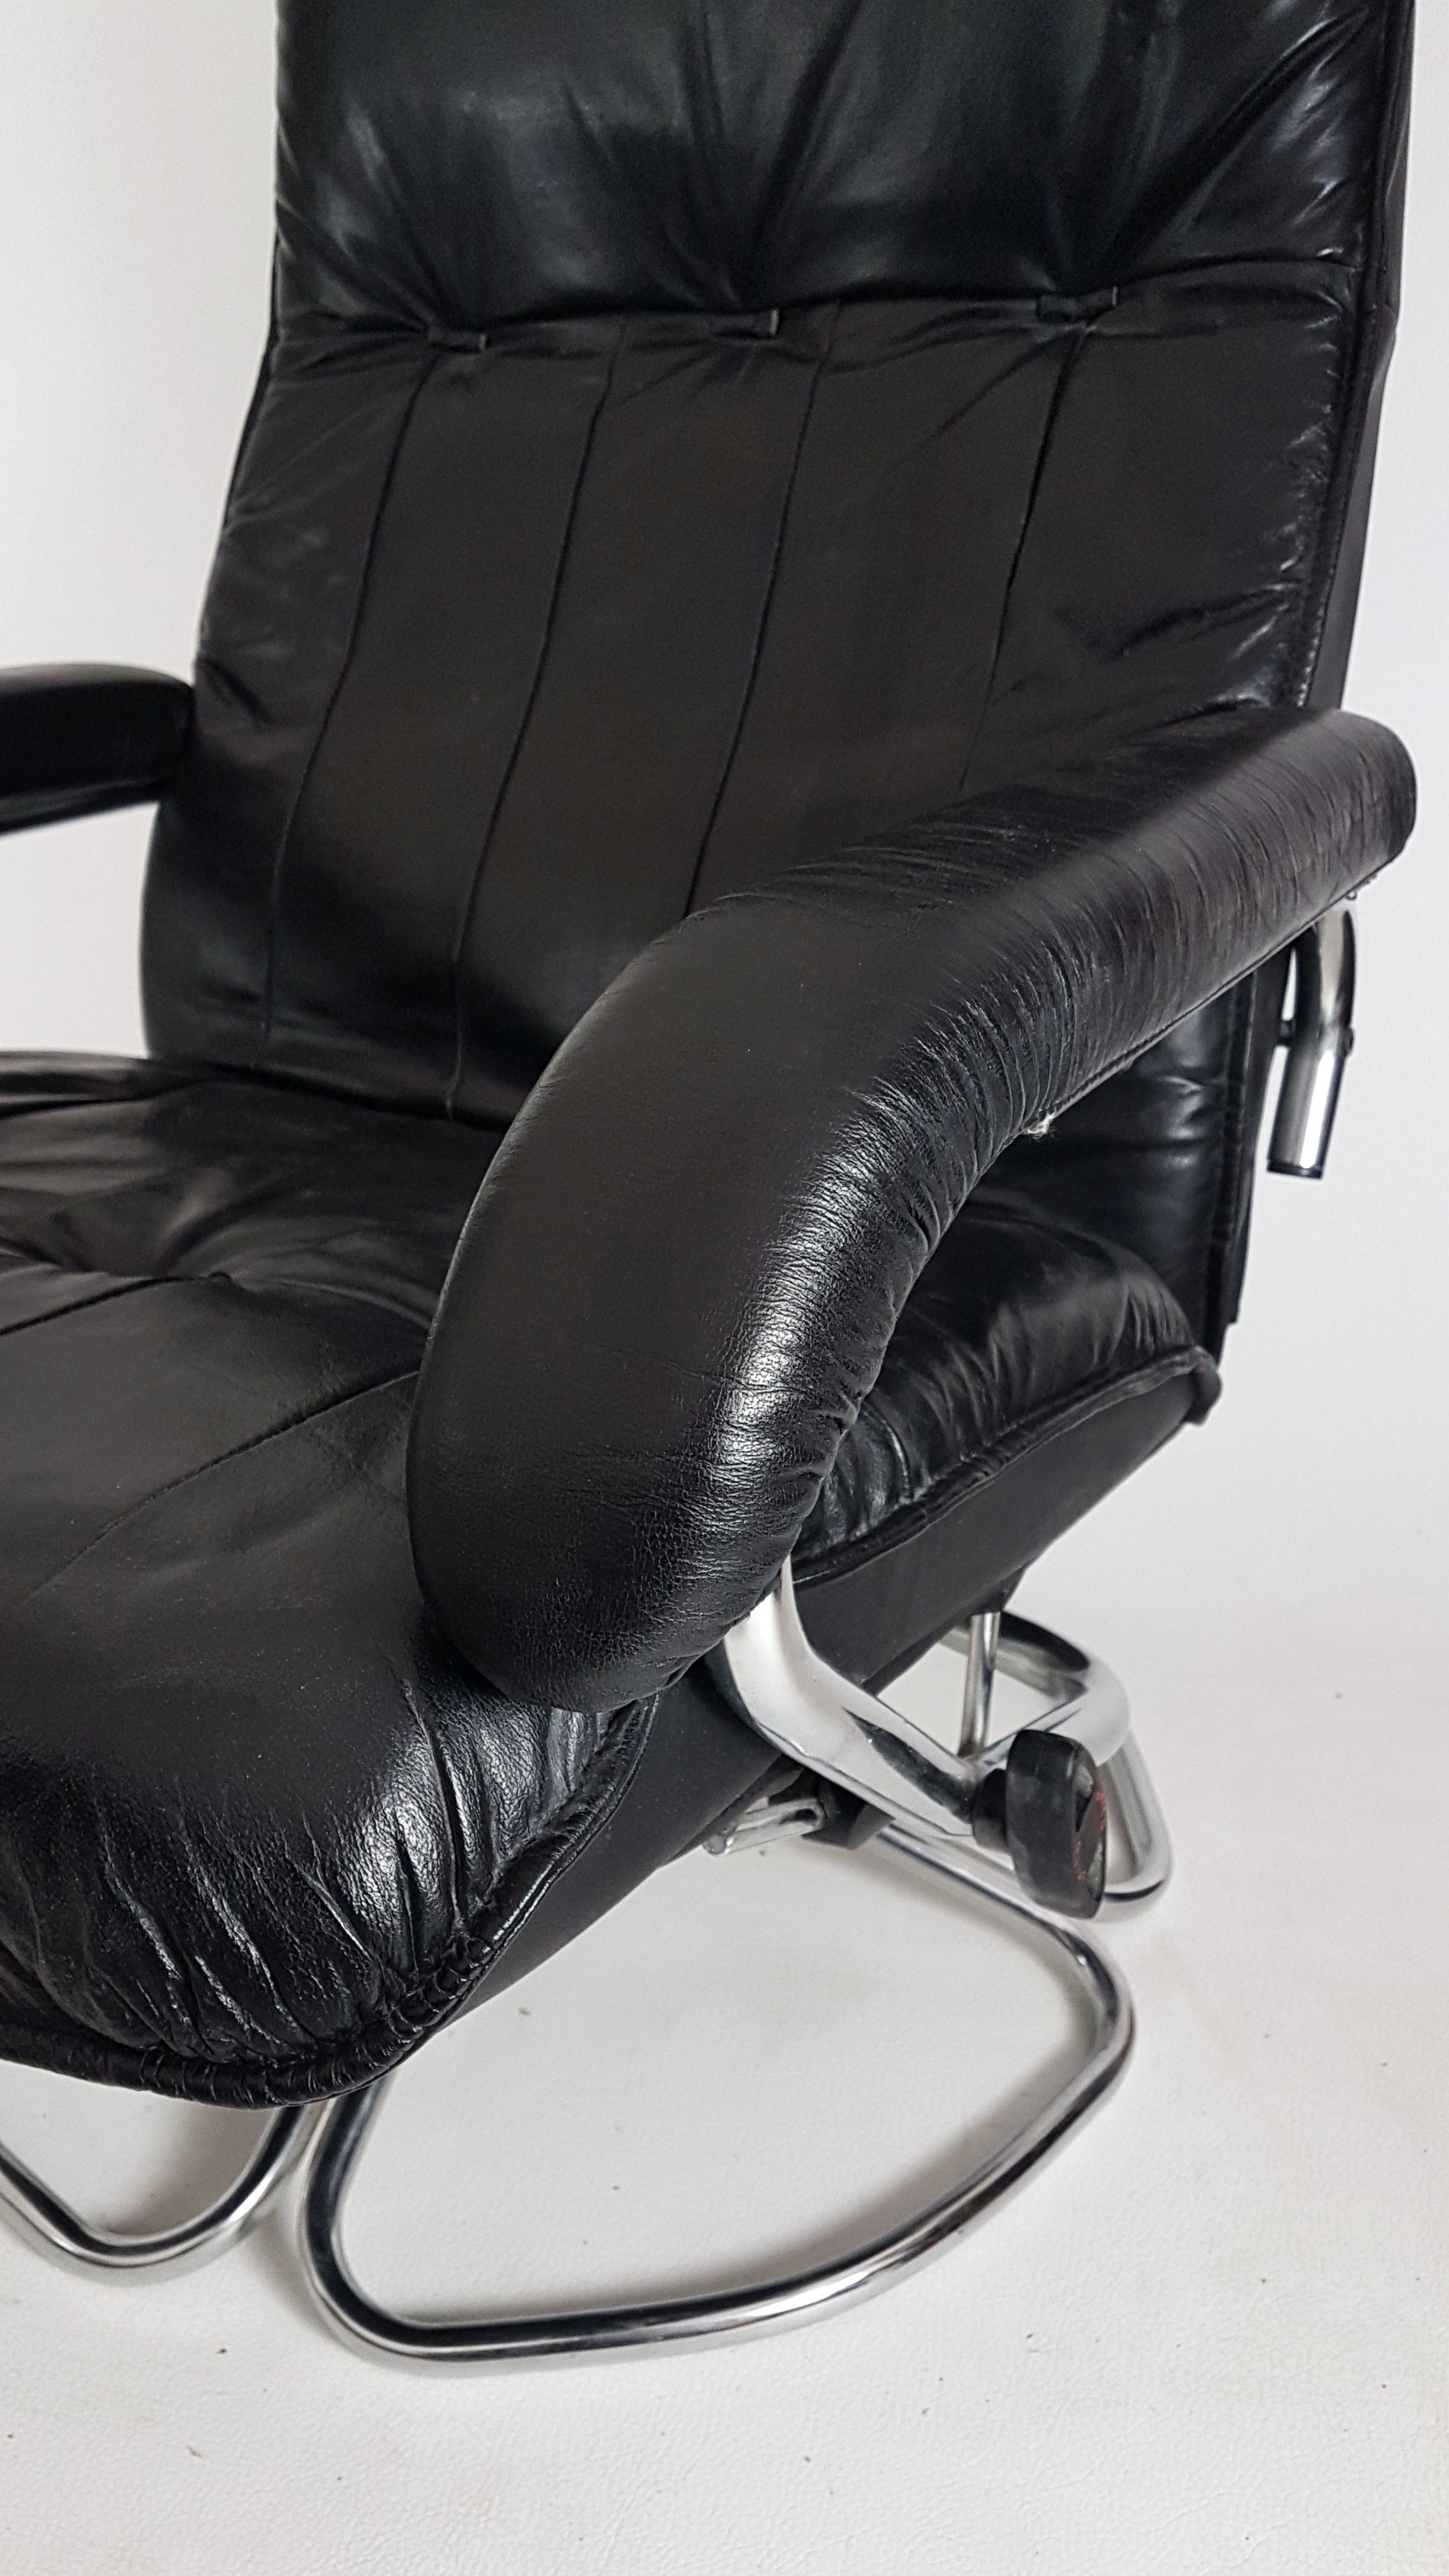 unico office chair. Previous Next Unico Office Chair M